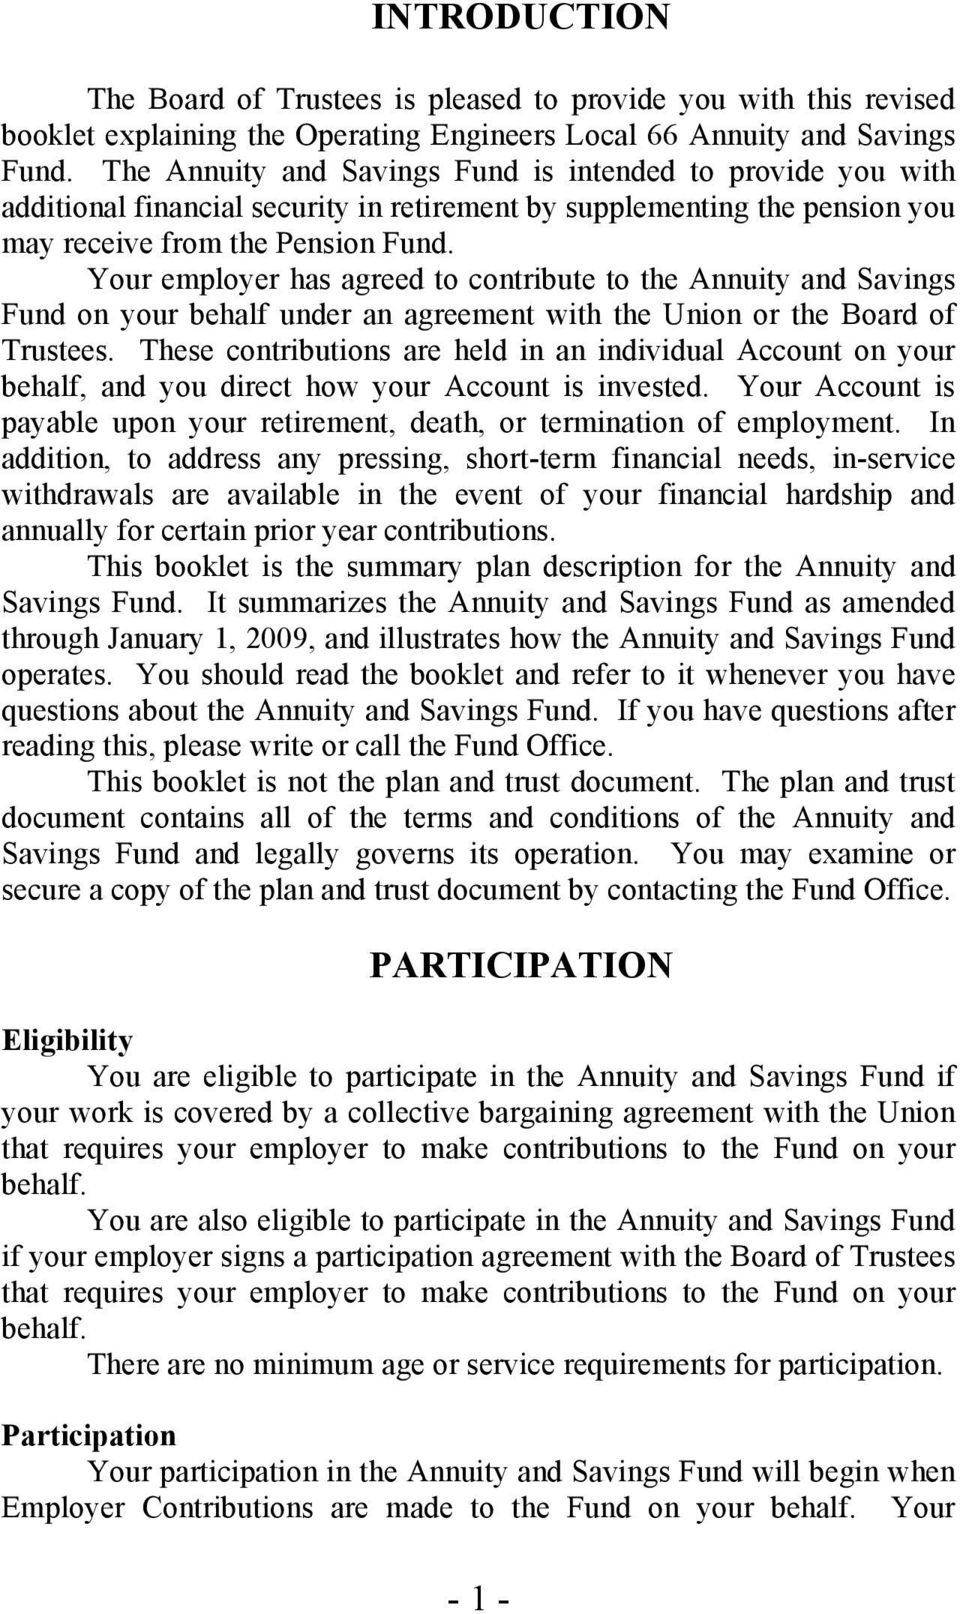 Your employer has agreed to contribute to the Annuity and Savings Fund on your behalf under an agreement with the Union or the Board of Trustees.